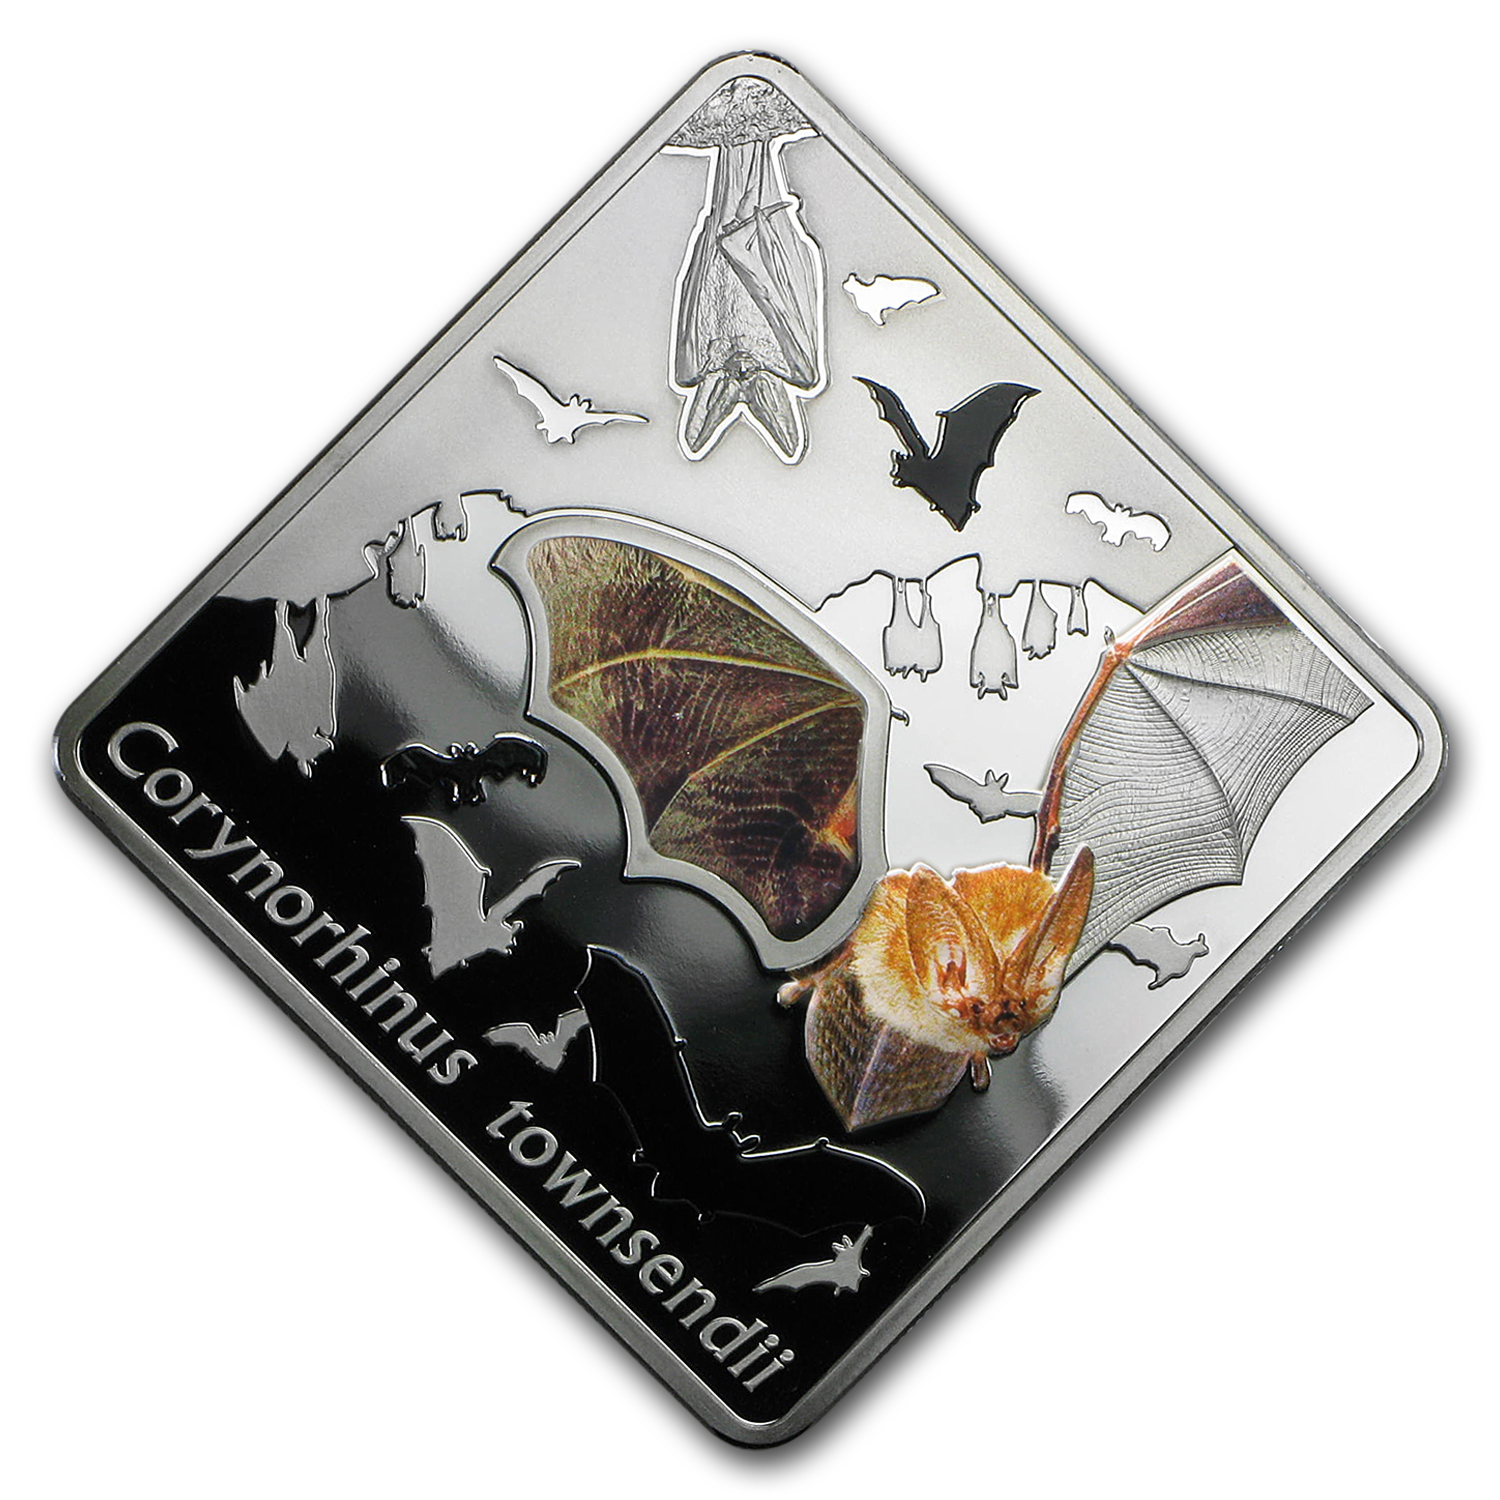 2016 Palau Silver Animals in Glass (The Bat)